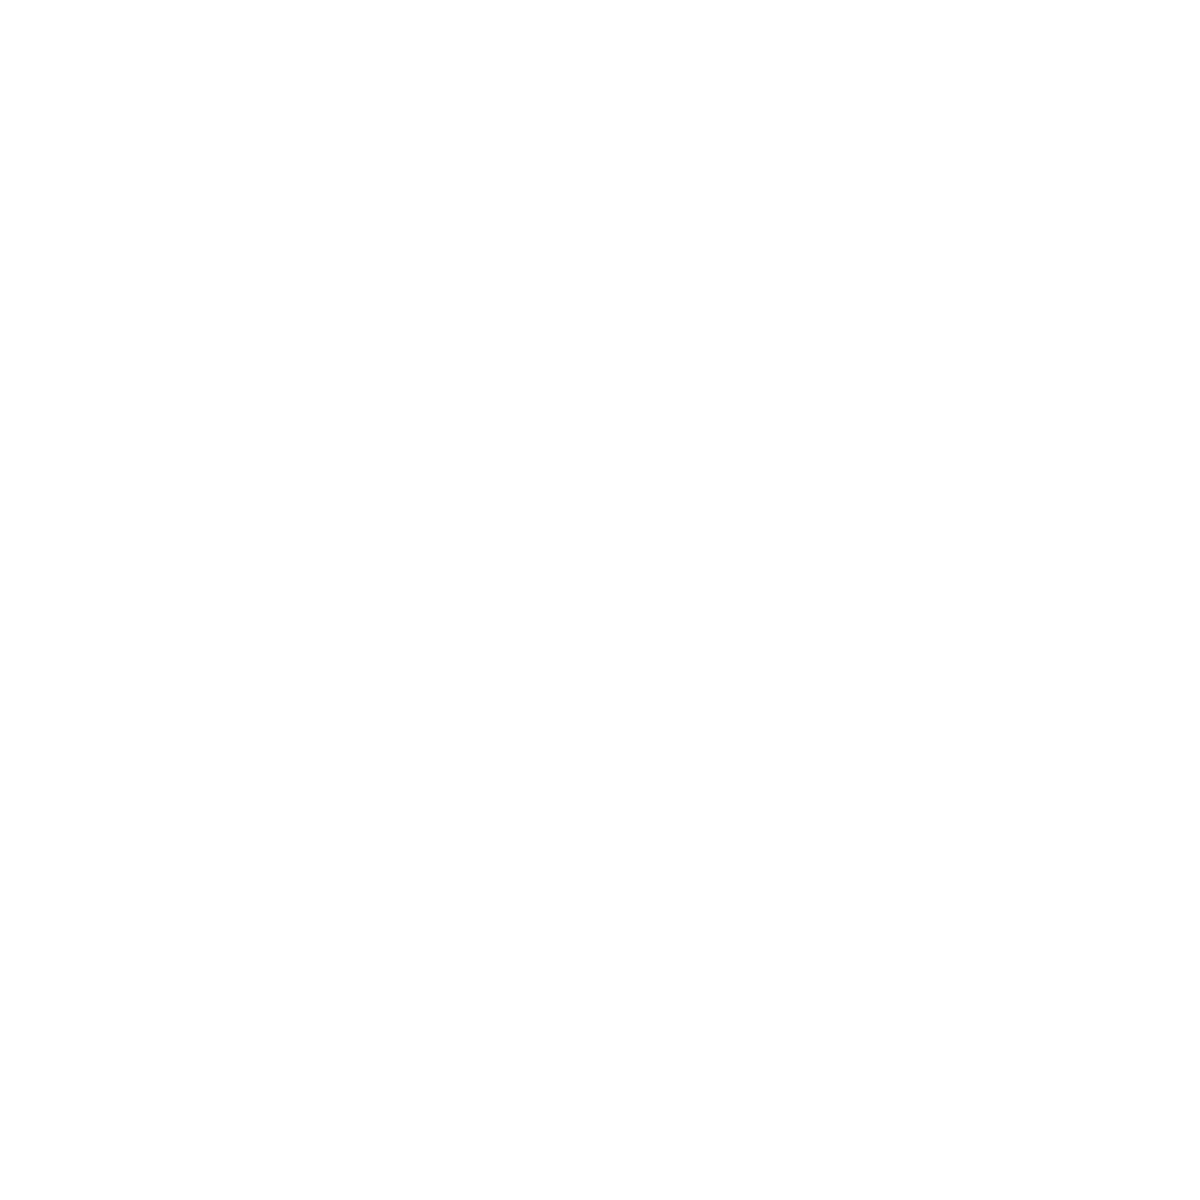 Collierville church of Christ